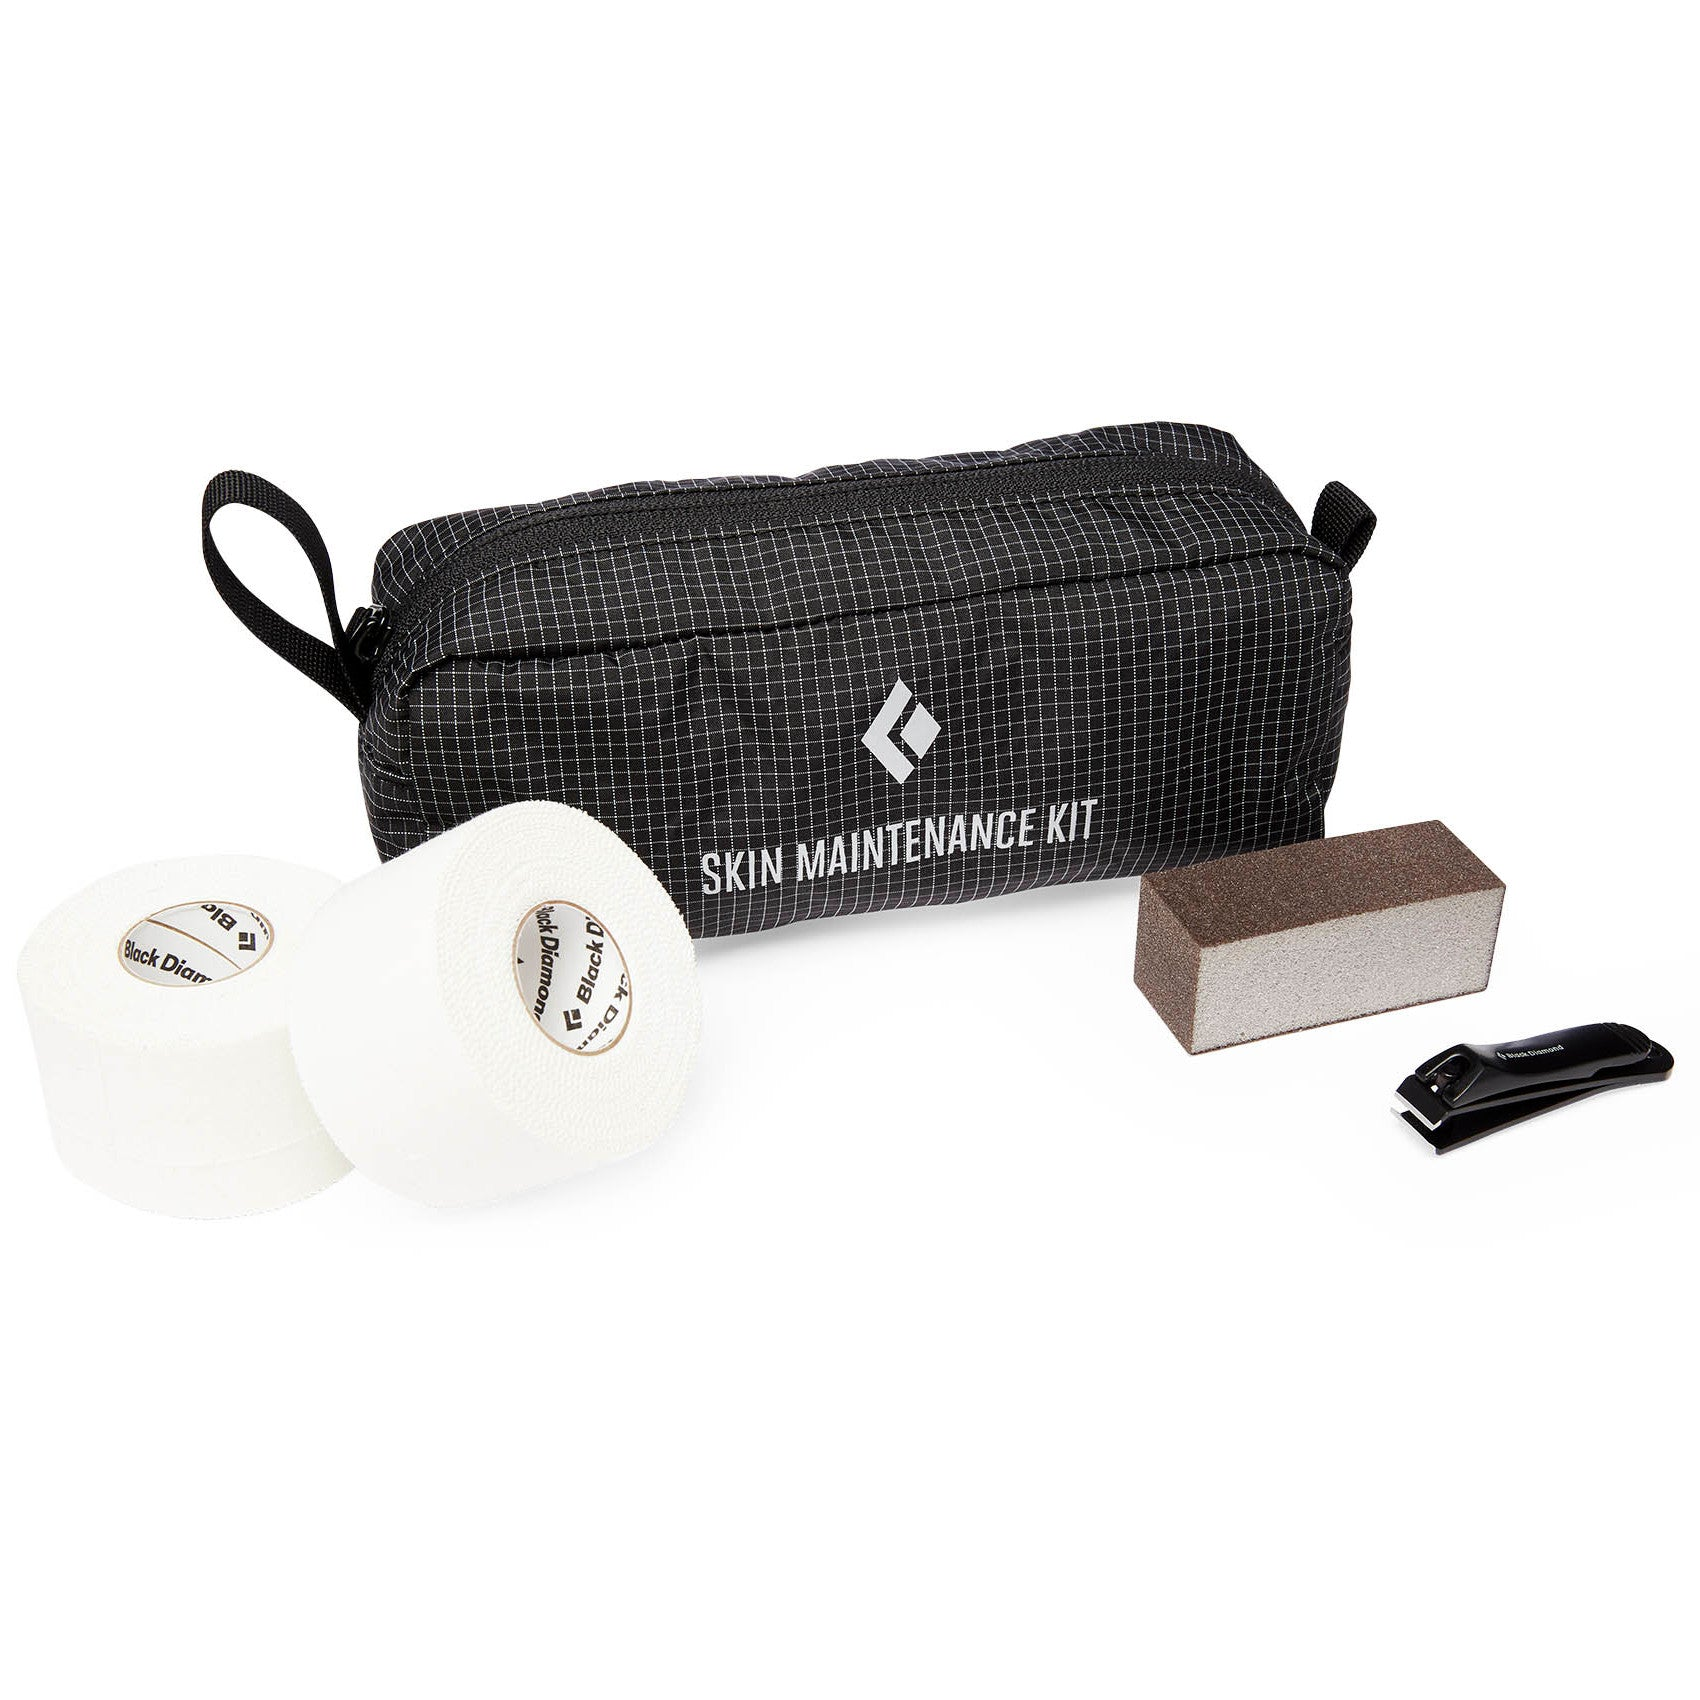 Black Diamond Skin Maintenance Kit, all parts shown outside of carry bag